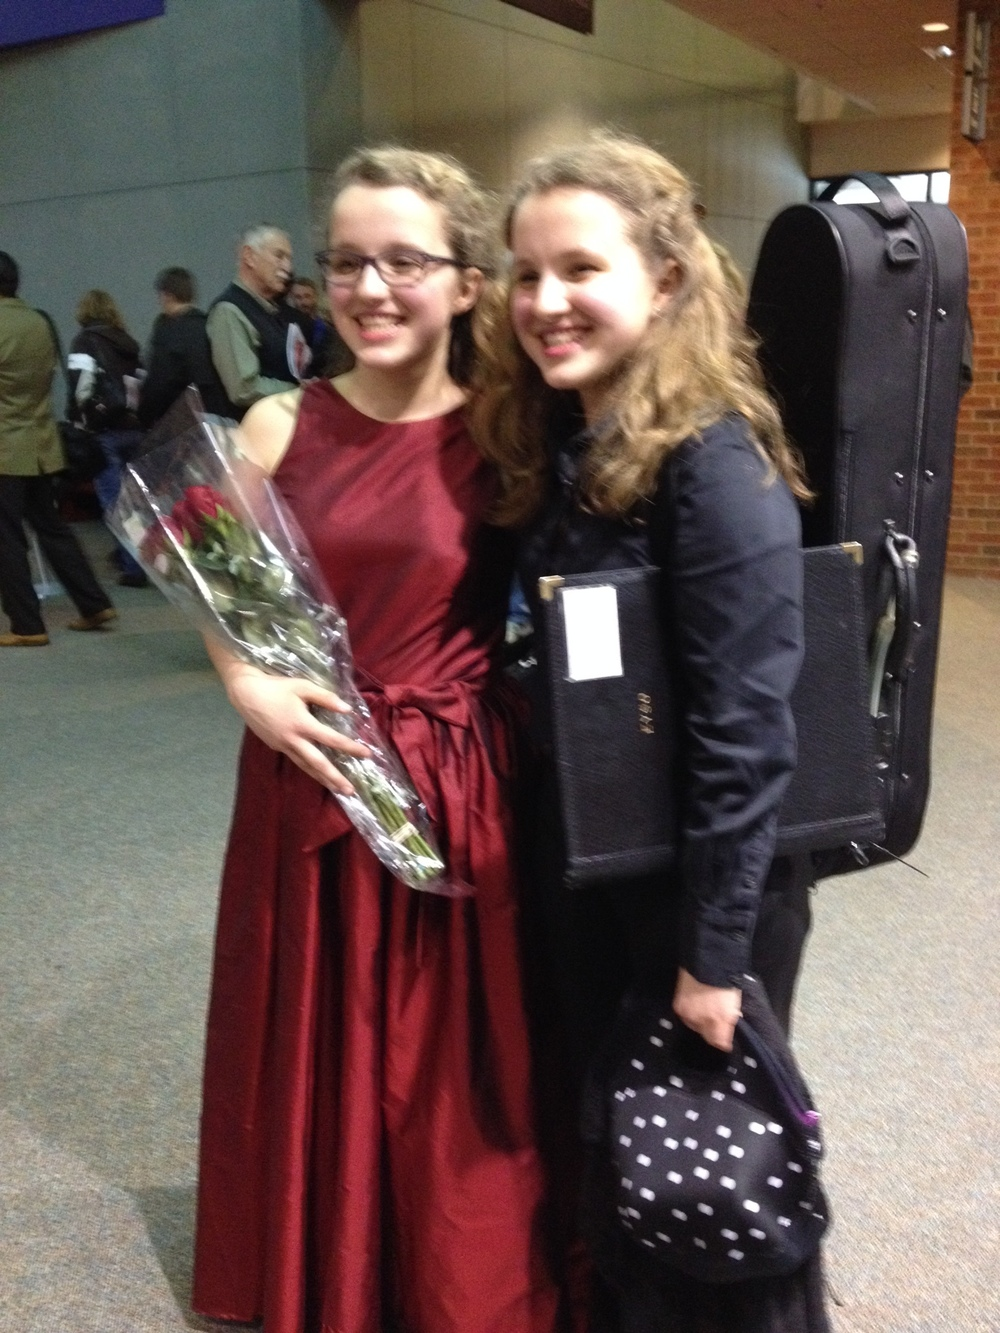 Trudie and Storey after Trudie's performance of Lalo cello concerto